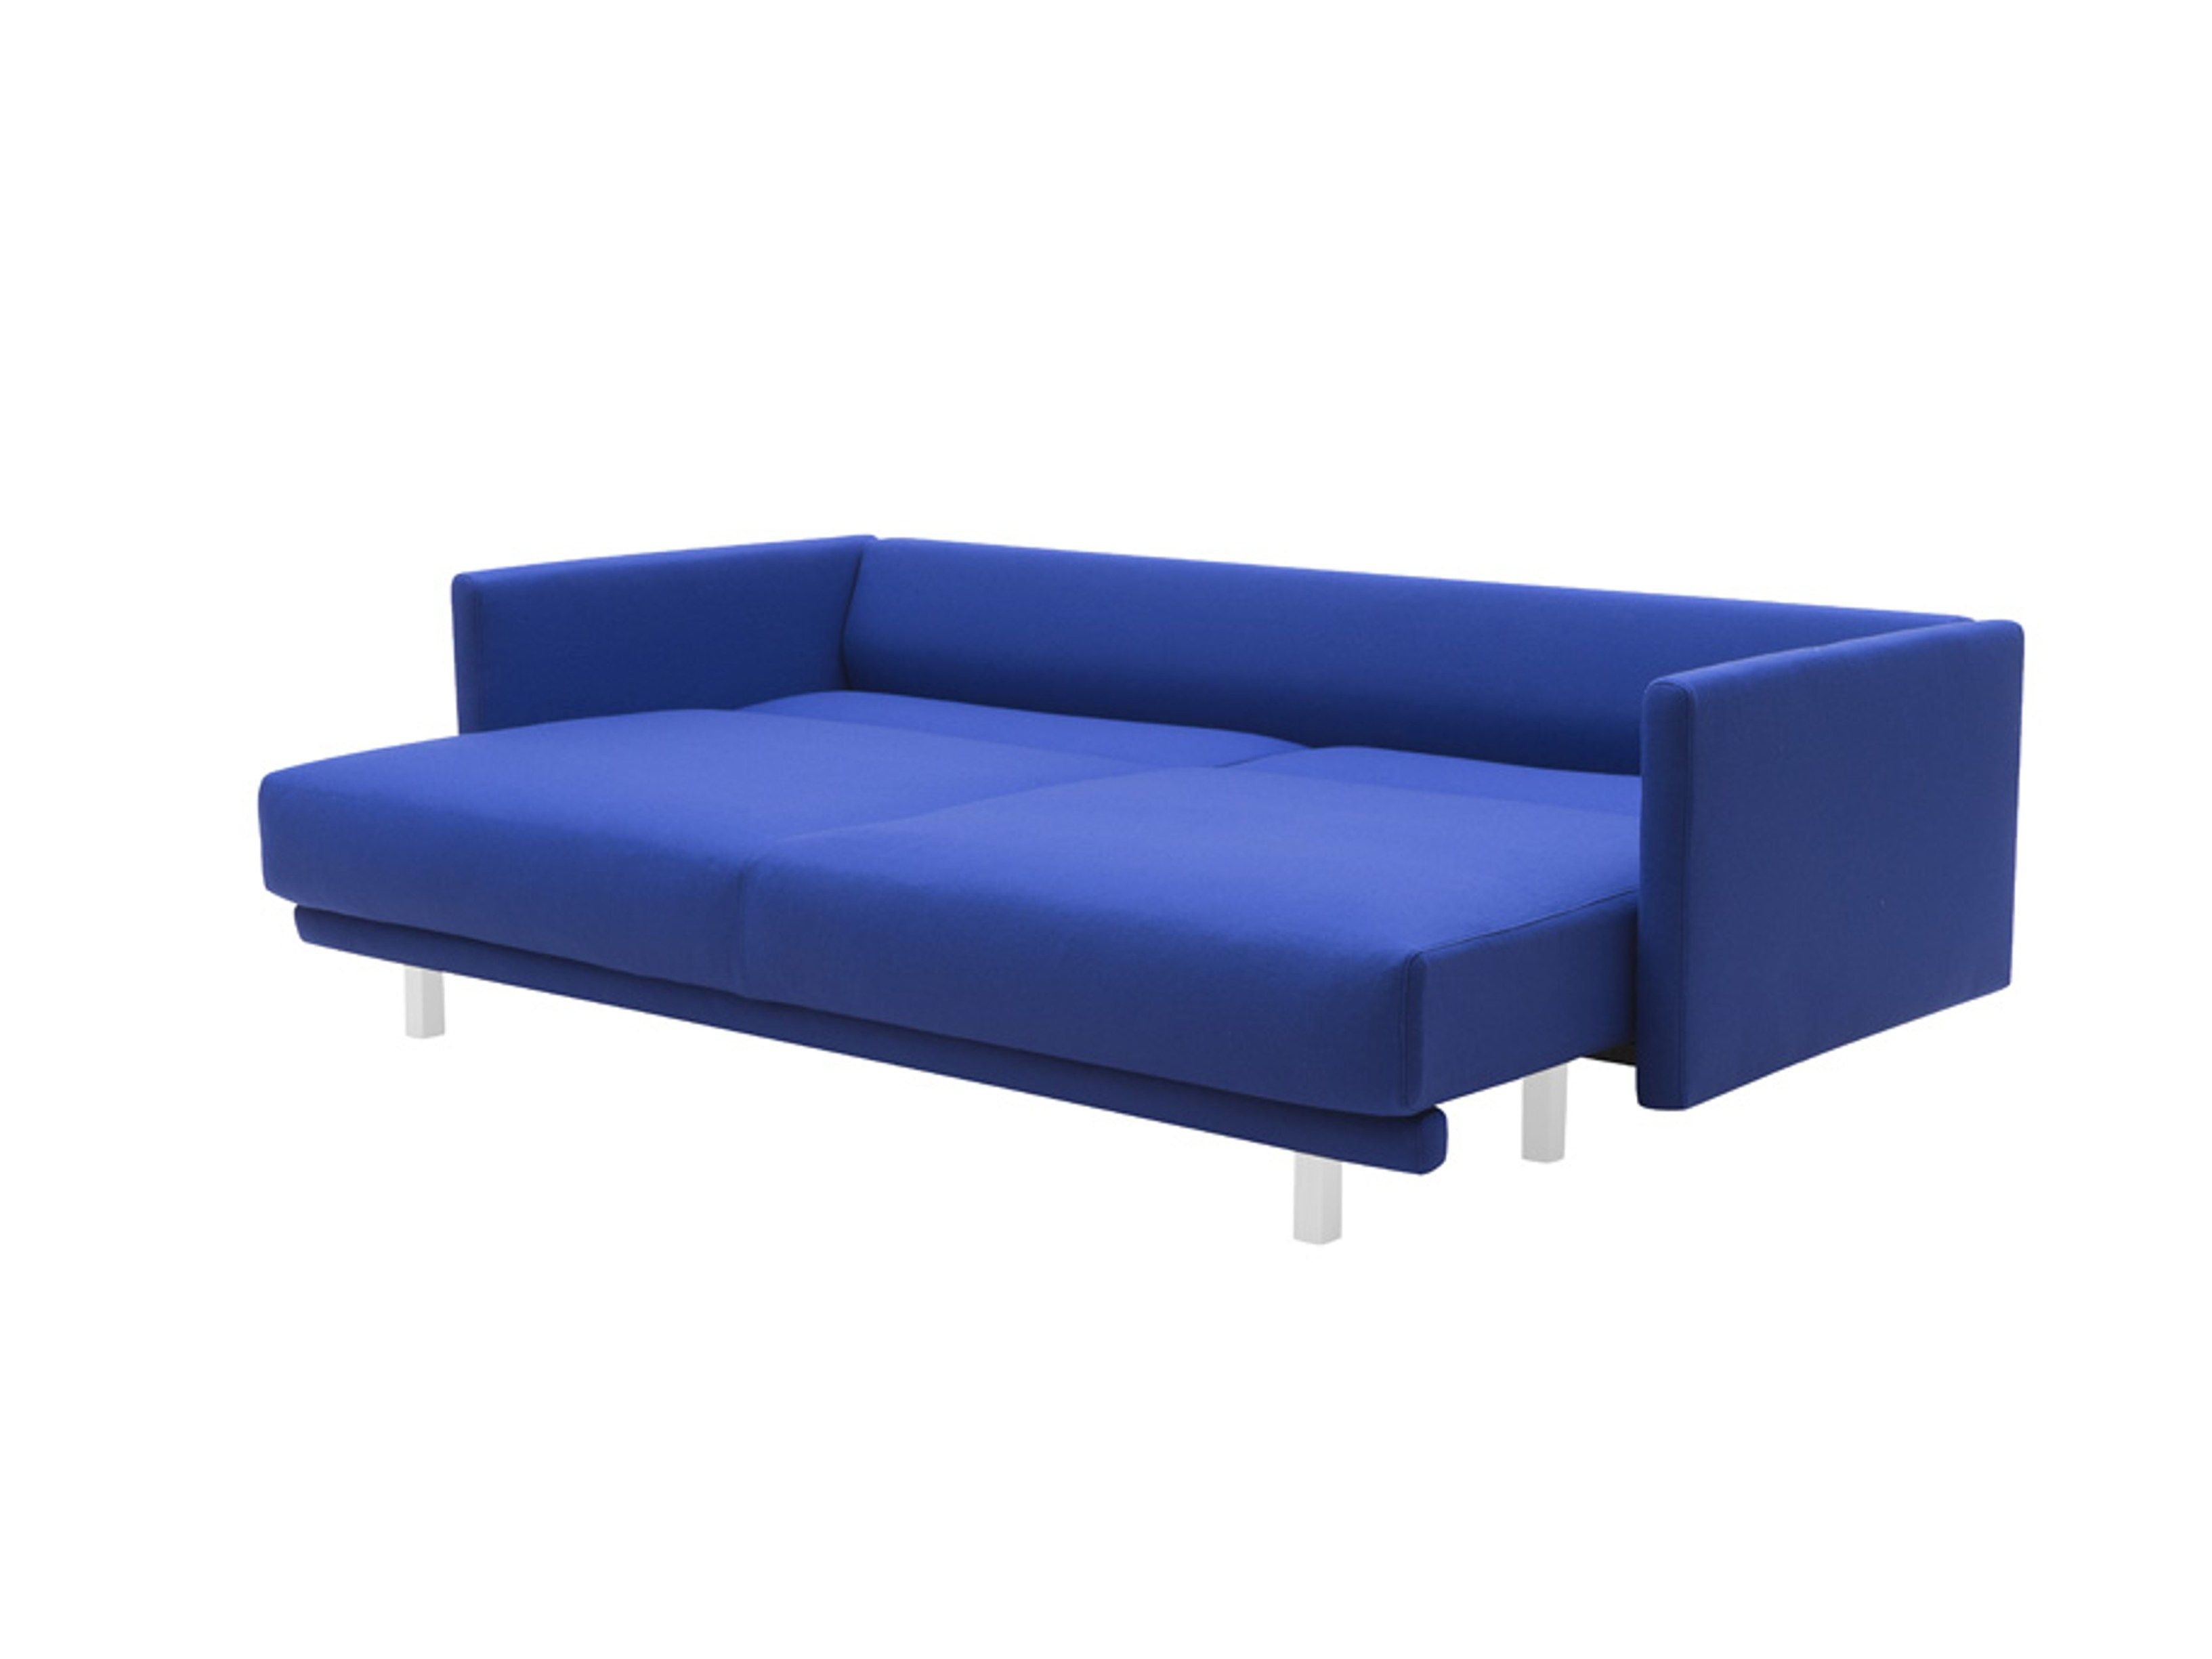 Sofa Bed Mondo Living Collection By Softline Design Muller Fabric Sofa Bed Sofa Sofa Bed Design